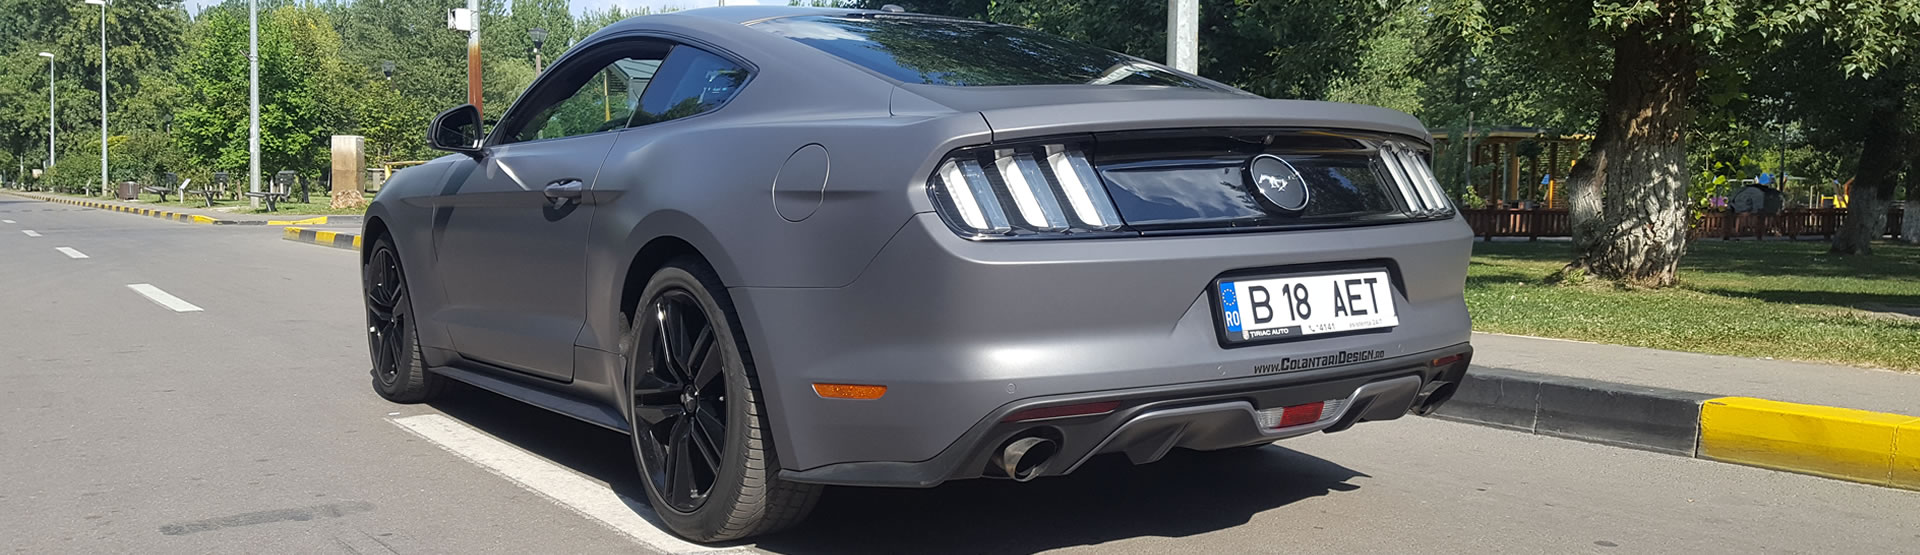 colantare_ford_mustang_slider